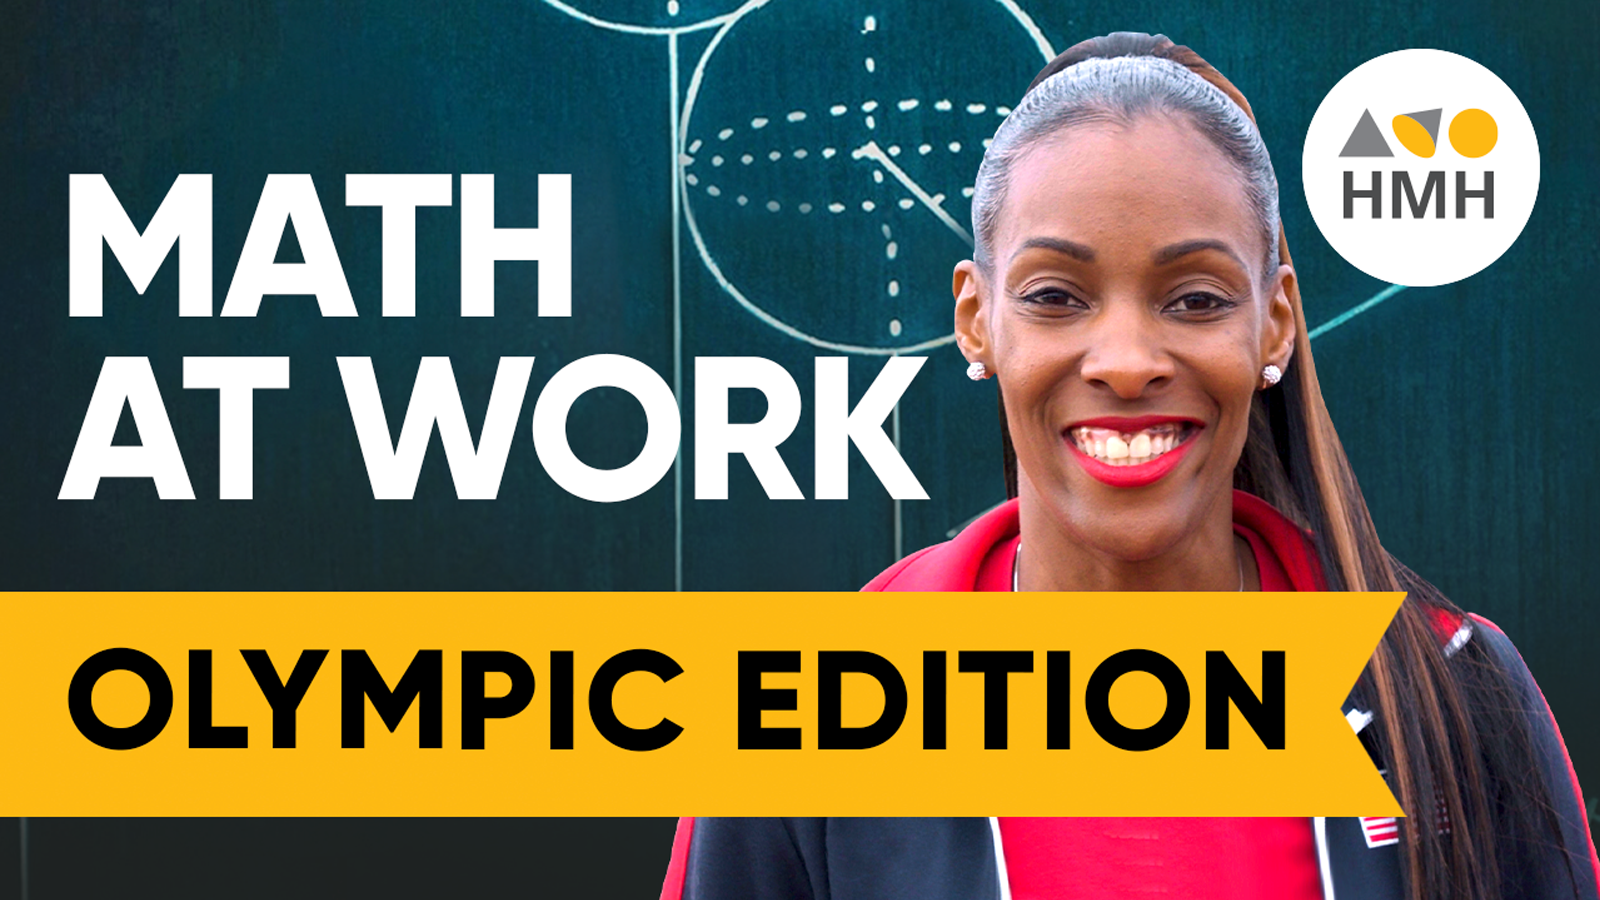 Math at Work Olympic Edition: How Is Math Used in Sports?